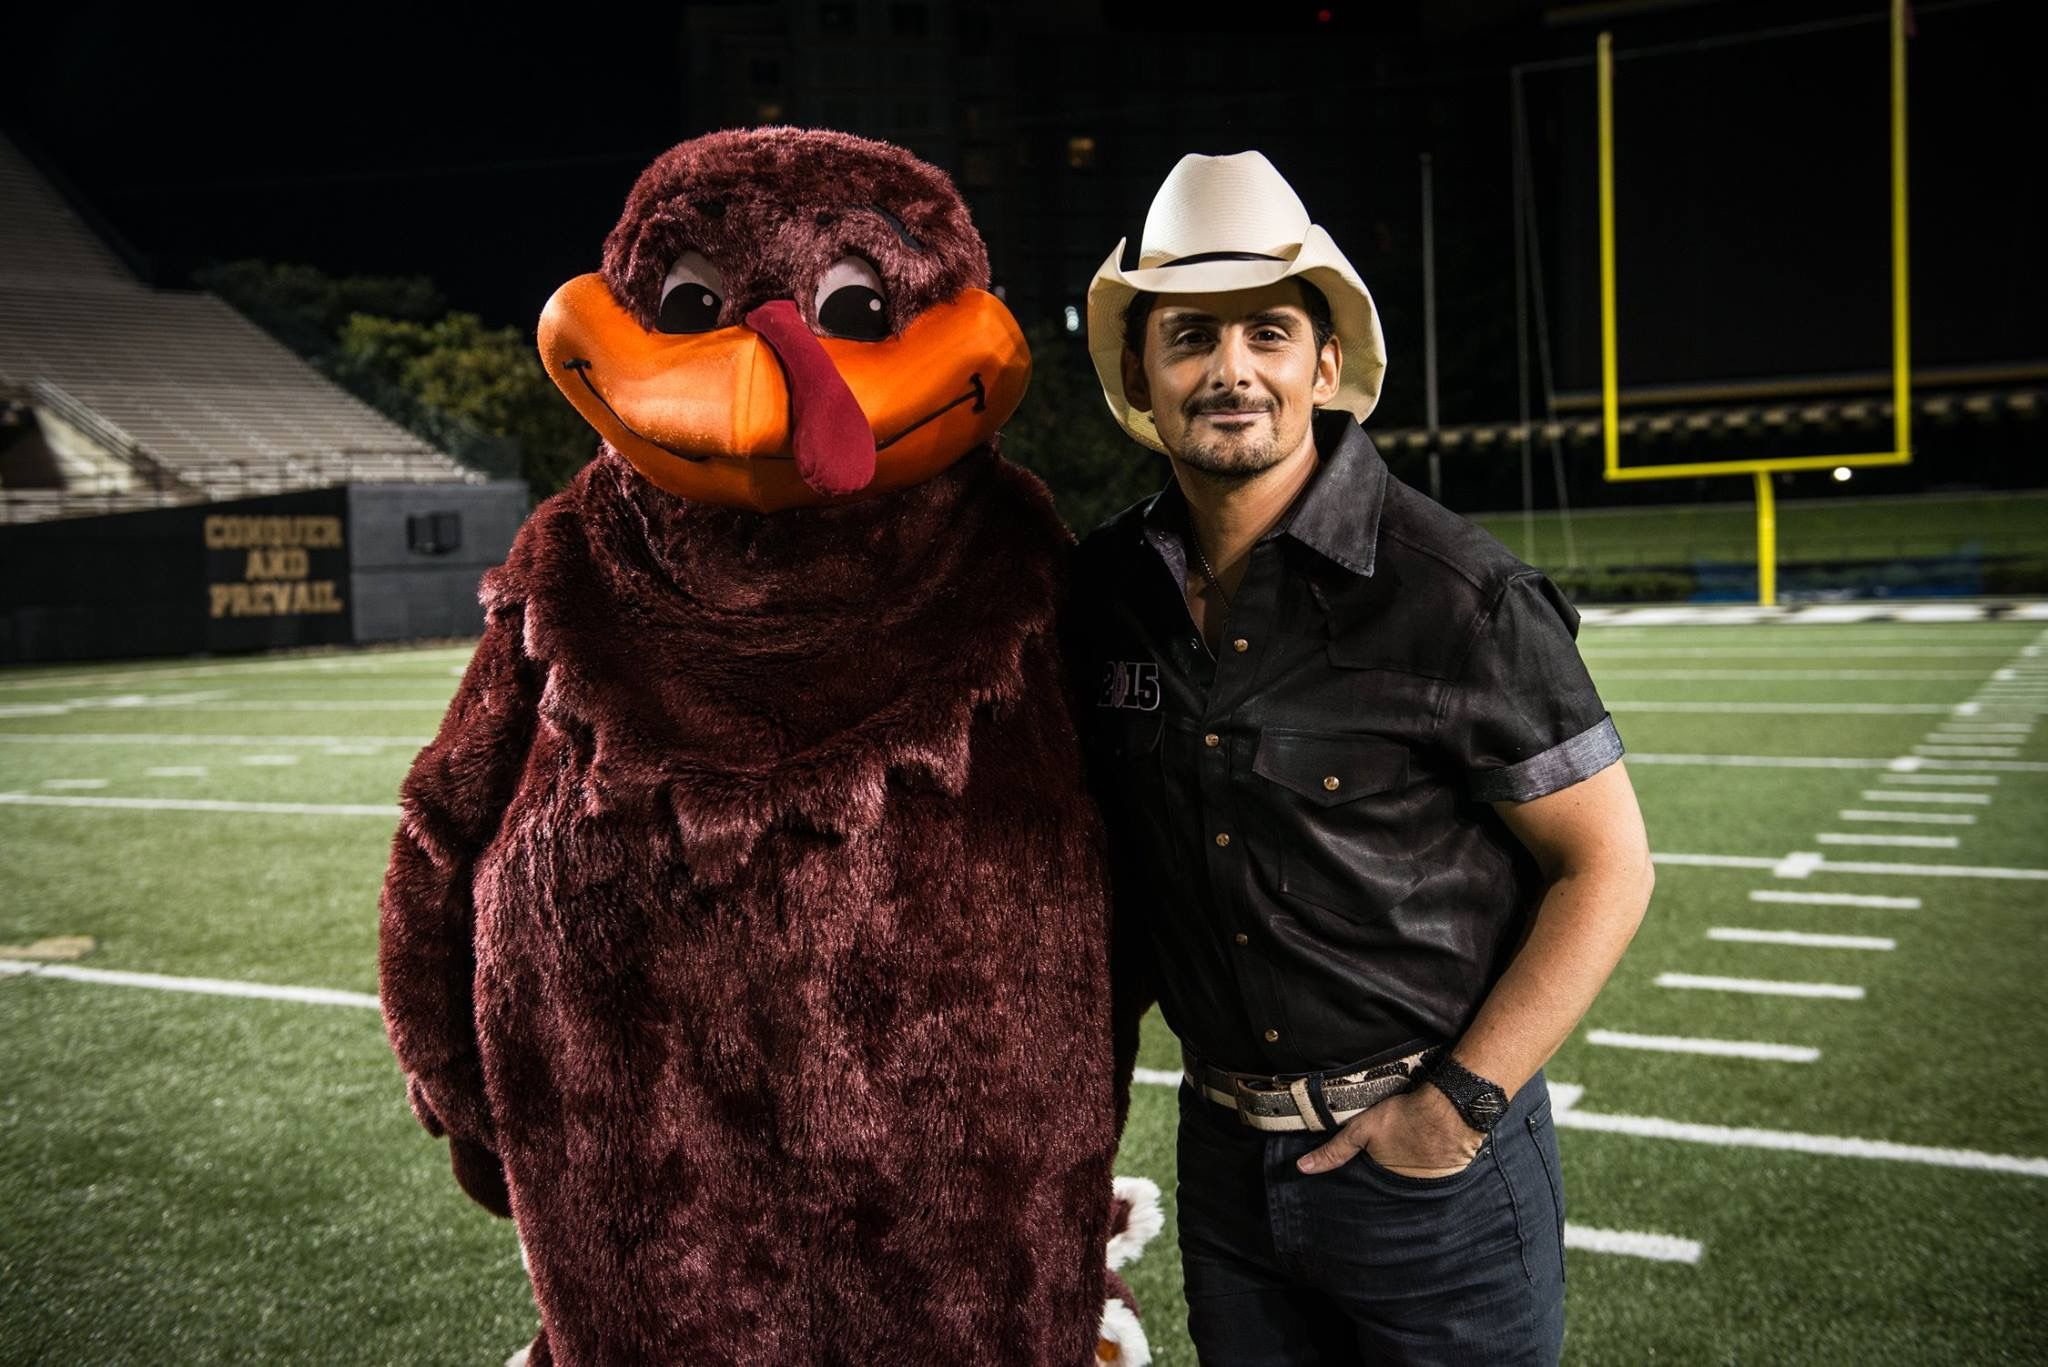 Pin by Lynn Nelson on Love That Country Music Hokie bird